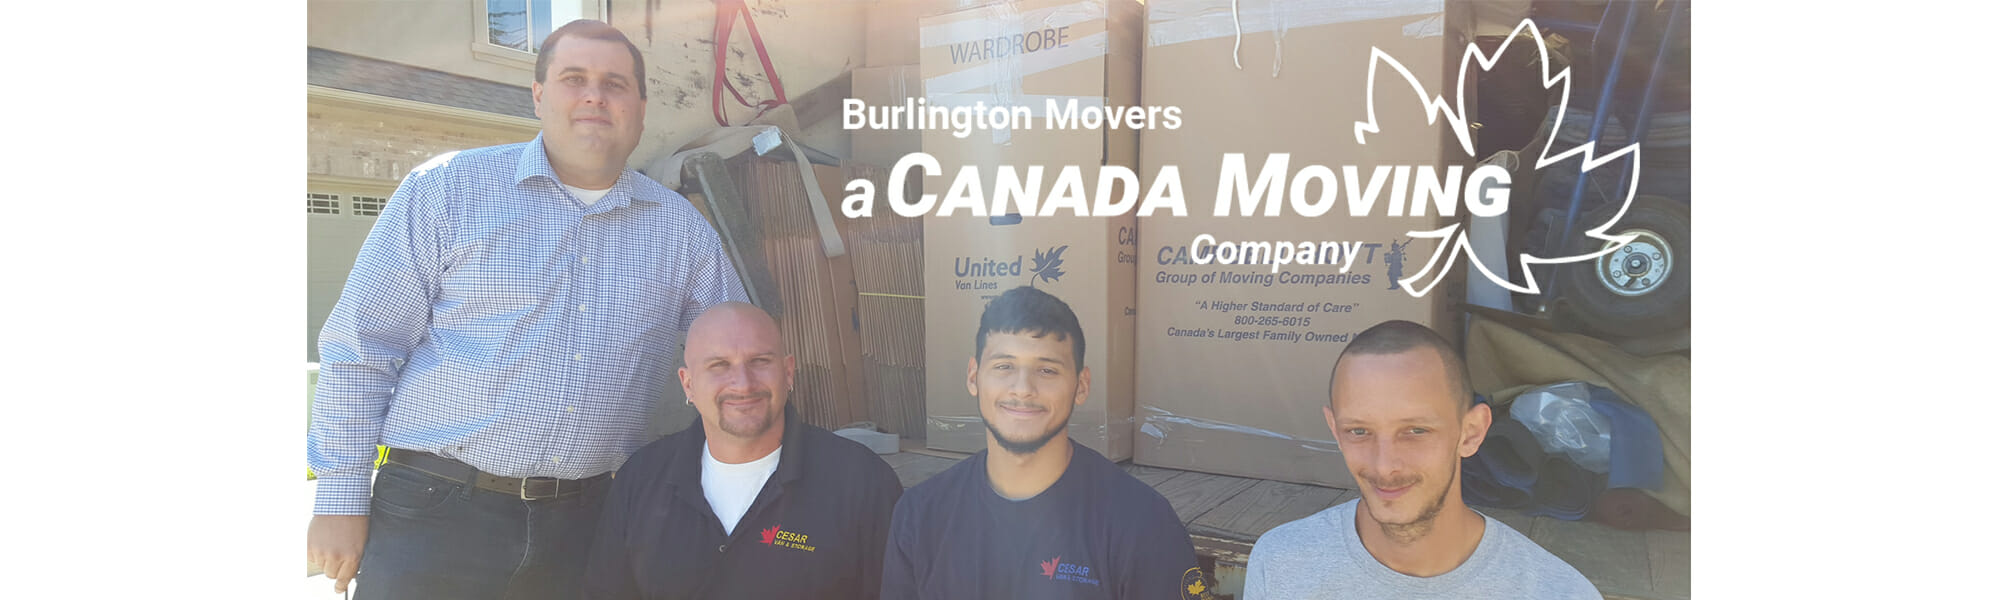 Chris Campbell and Moving Crew - Burlington Movers (A Canada Moving Company)